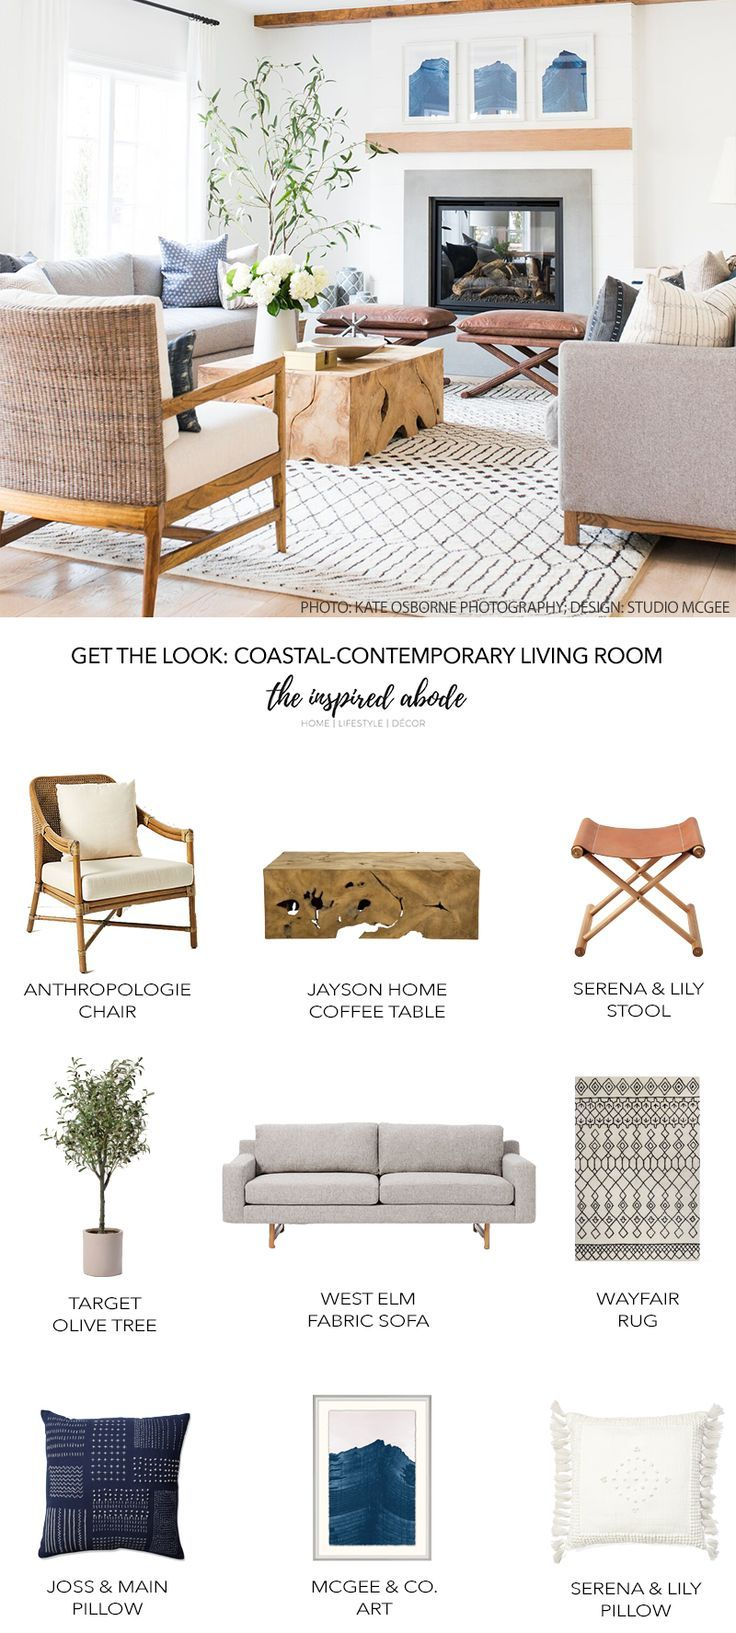 Get the Look: Coastal-Contemporary Living Room — The Inspired Abode